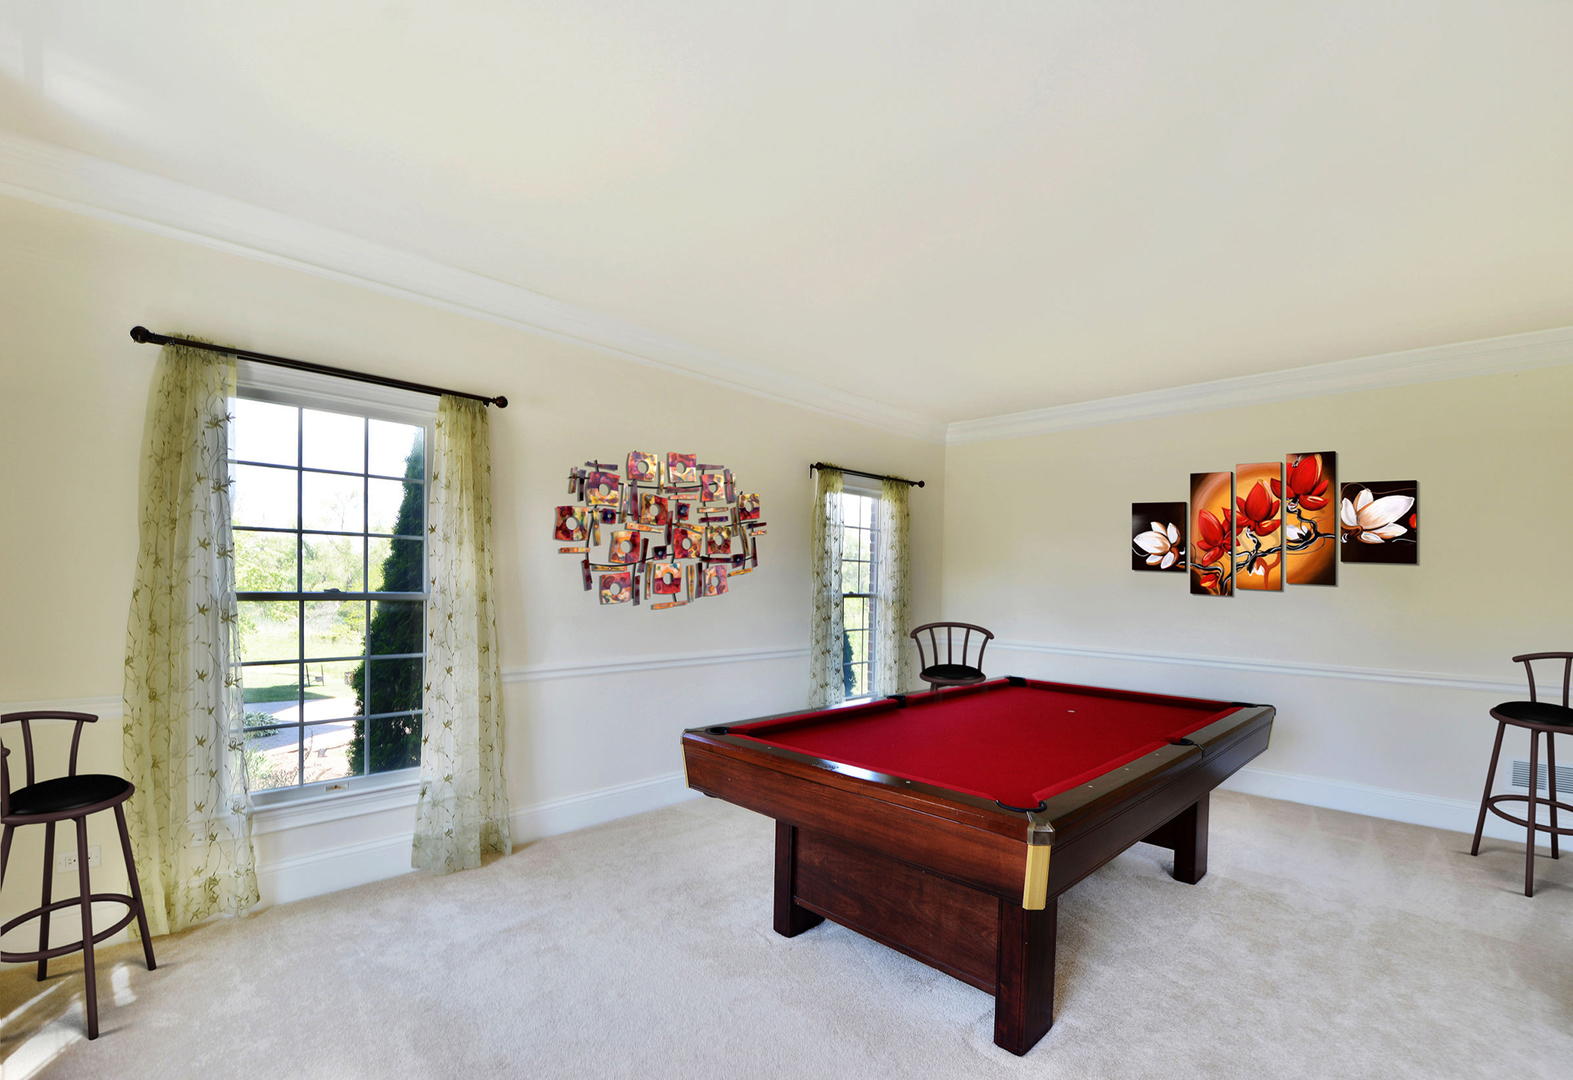 32 Doral Drive, Hawthorn Woods, IL, 60047 | Prime Real Estate Group ...